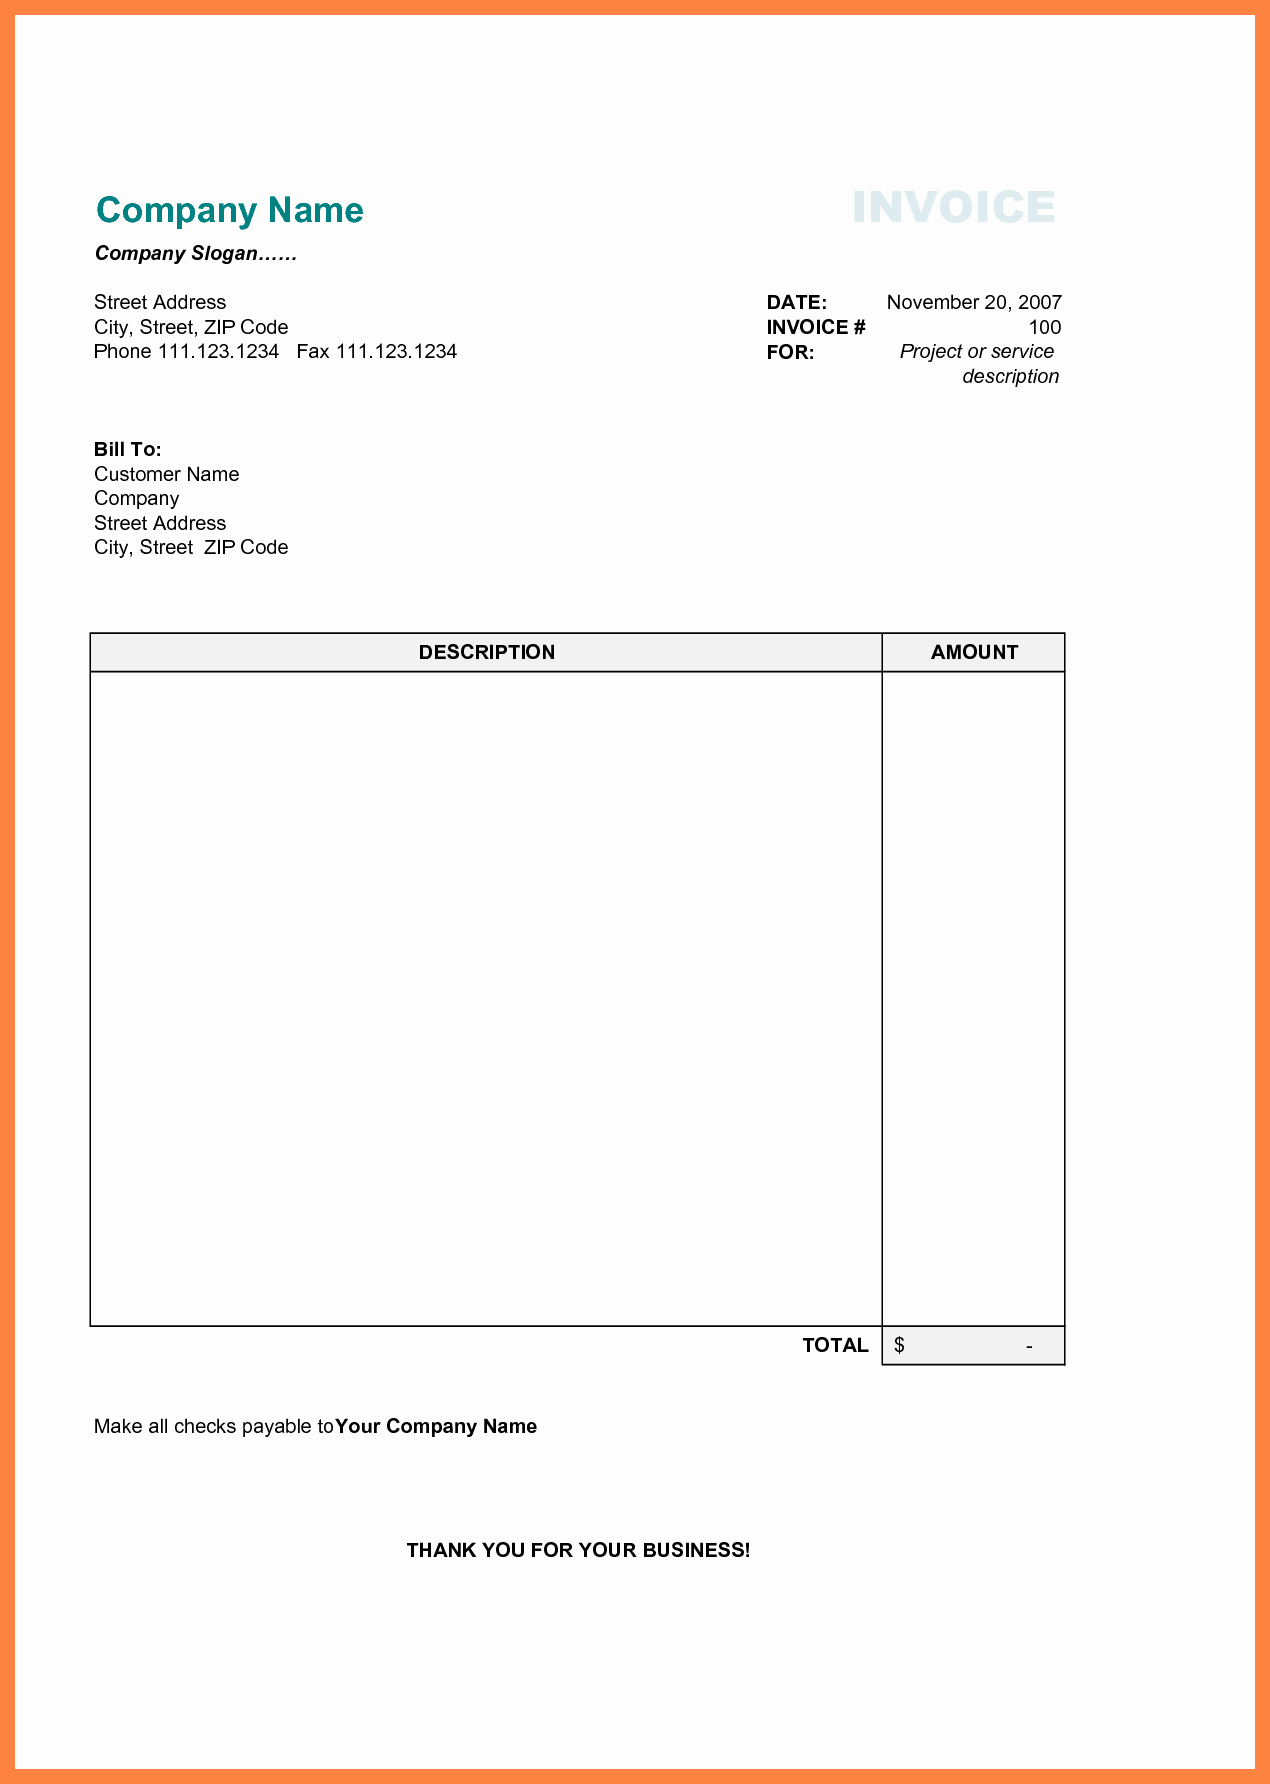 Free Excel Invoice Template Inspirational Free Printable Business Invoice Template Invoice format